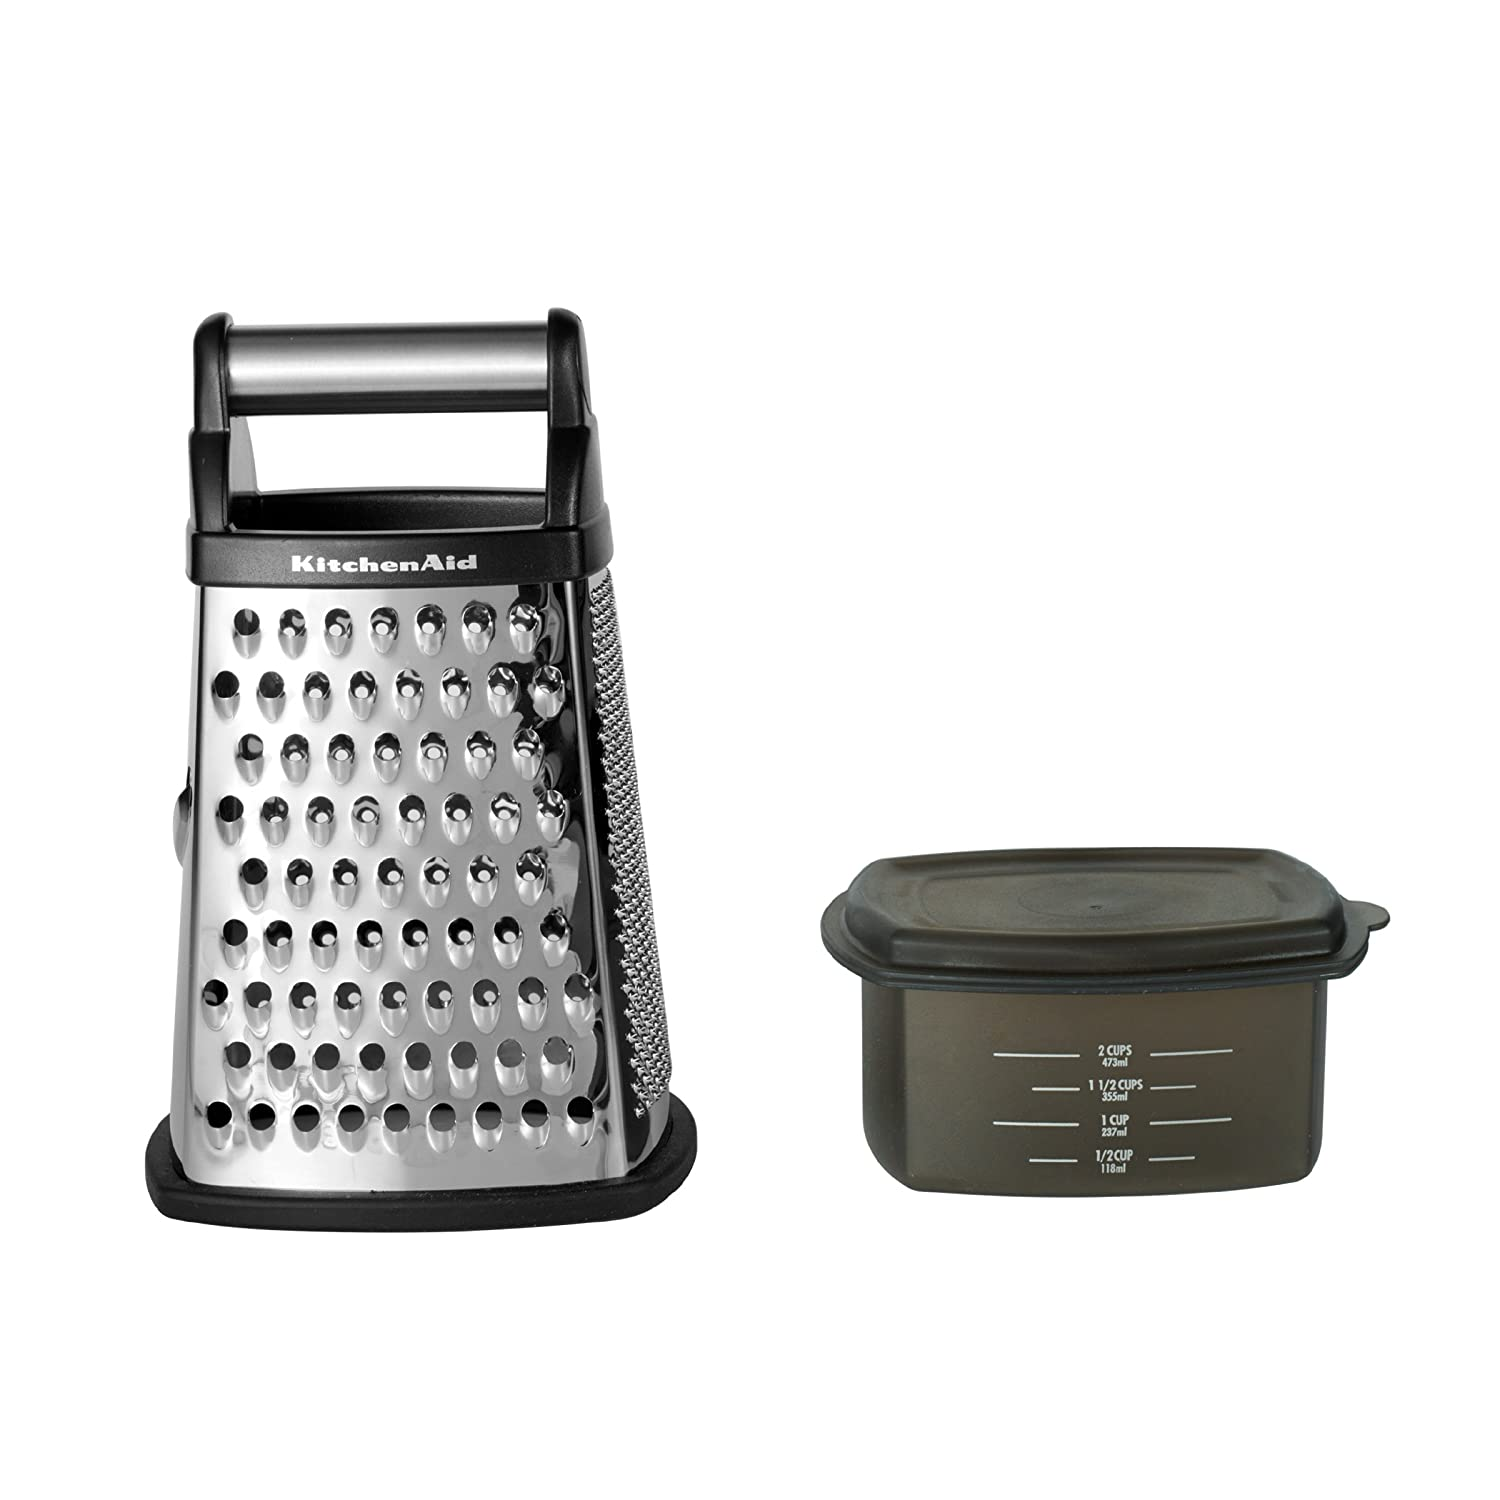 KitchenAid Gourmet Box Grater, Black KN300OSOBA